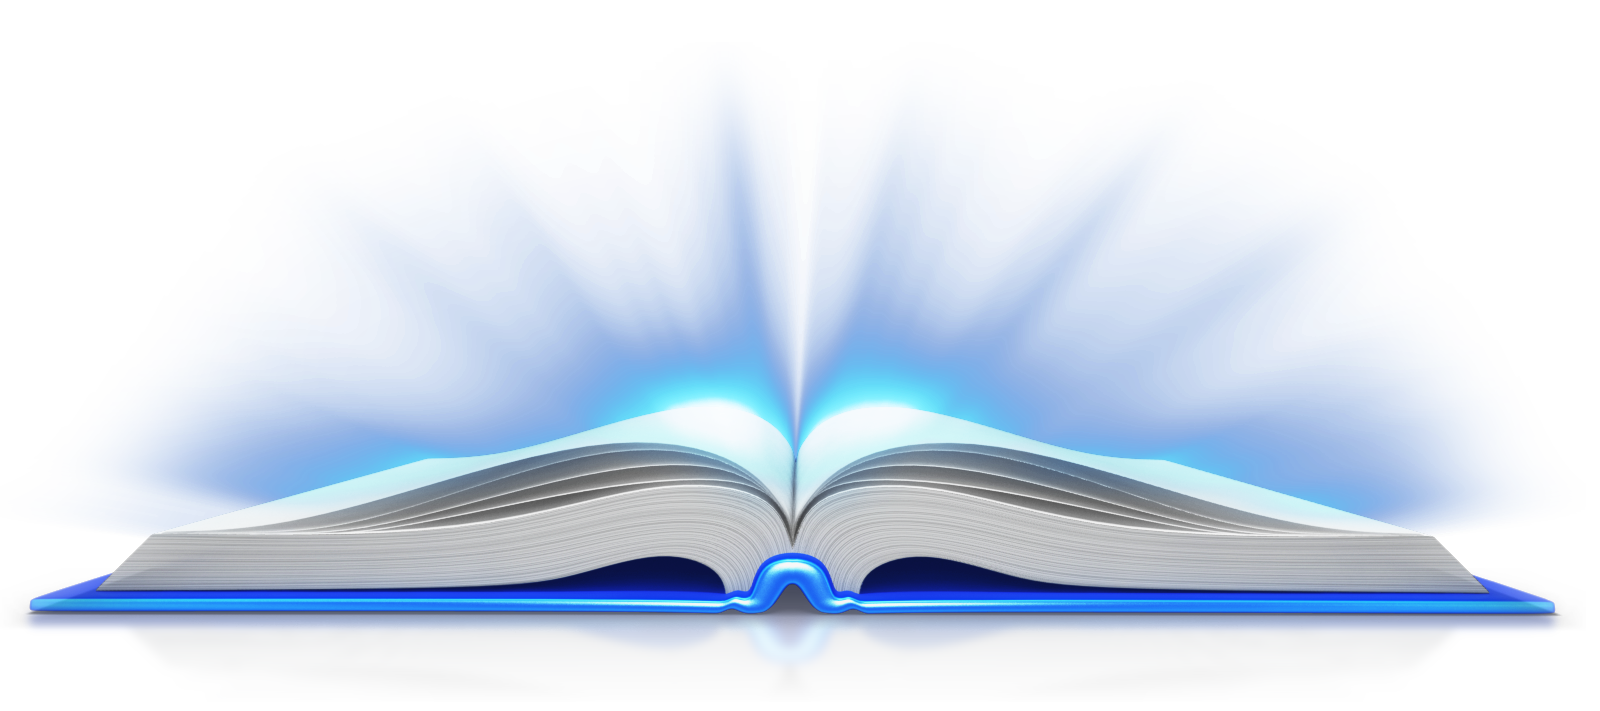 Open book clipart transparent royalty free download Book PNG Transparent Book.PNG Images. | PlusPNG royalty free download